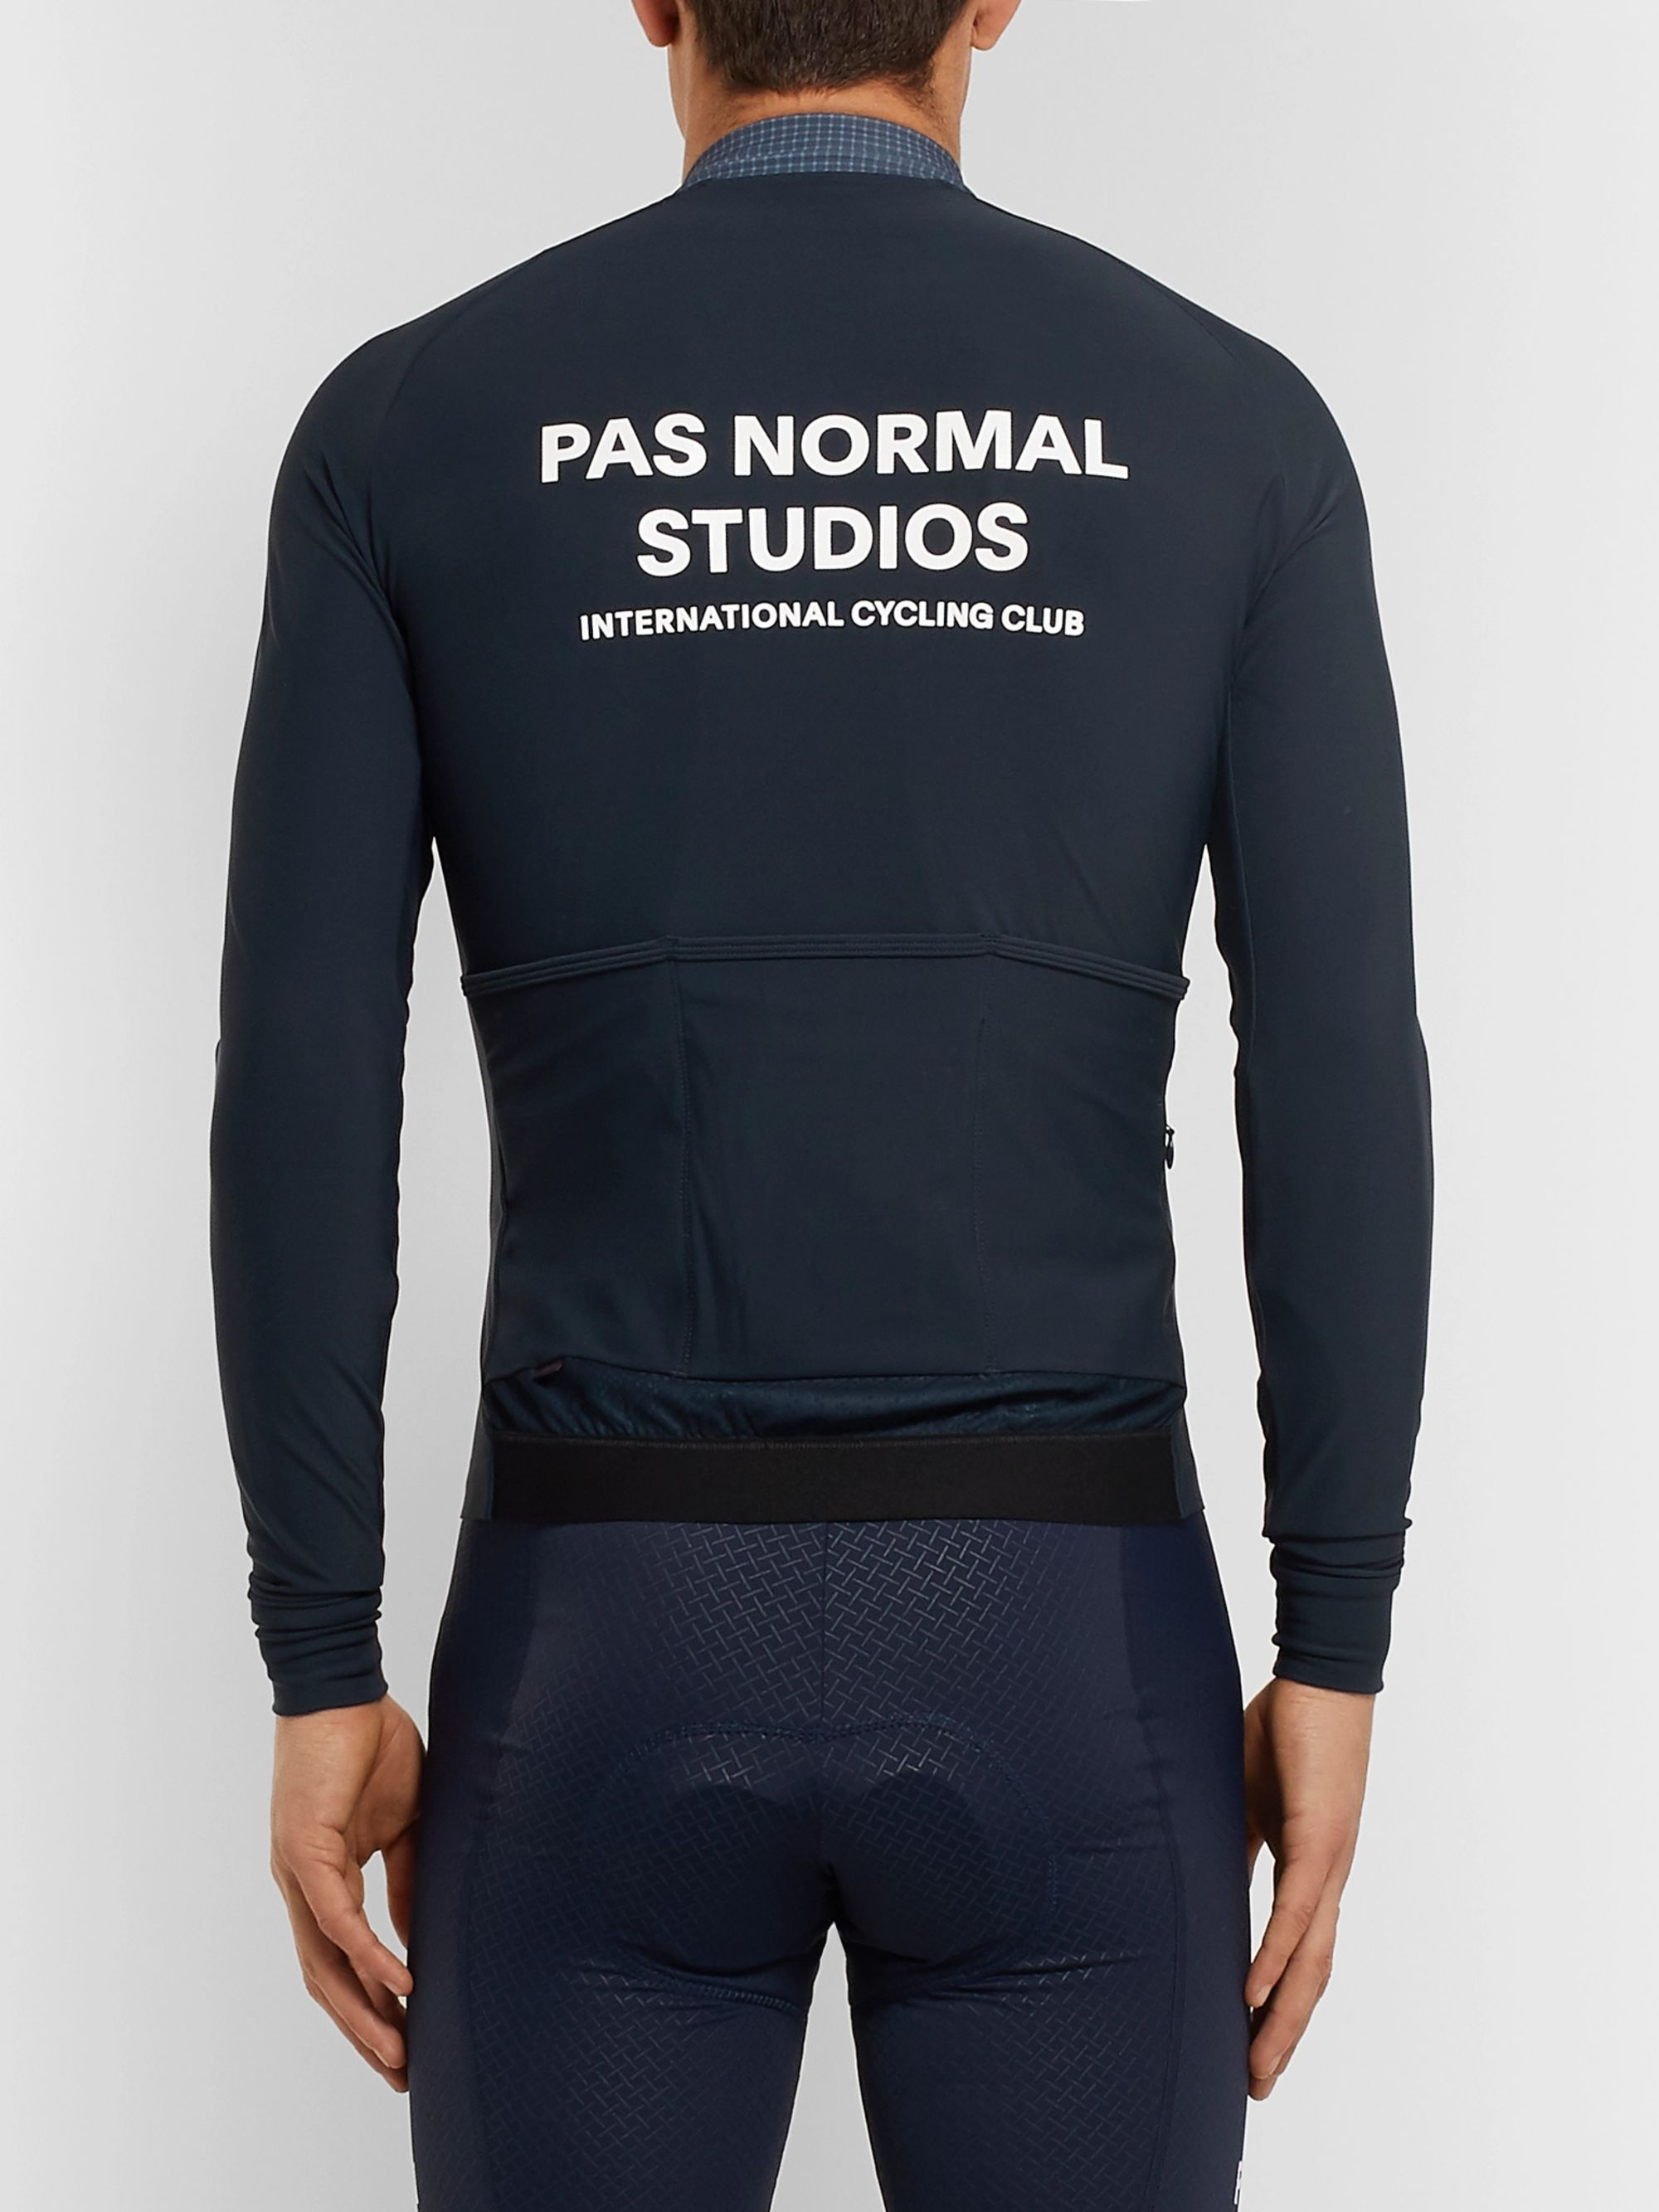 Pas Normal Studios Zip-Up Stretch Cycling Jersey